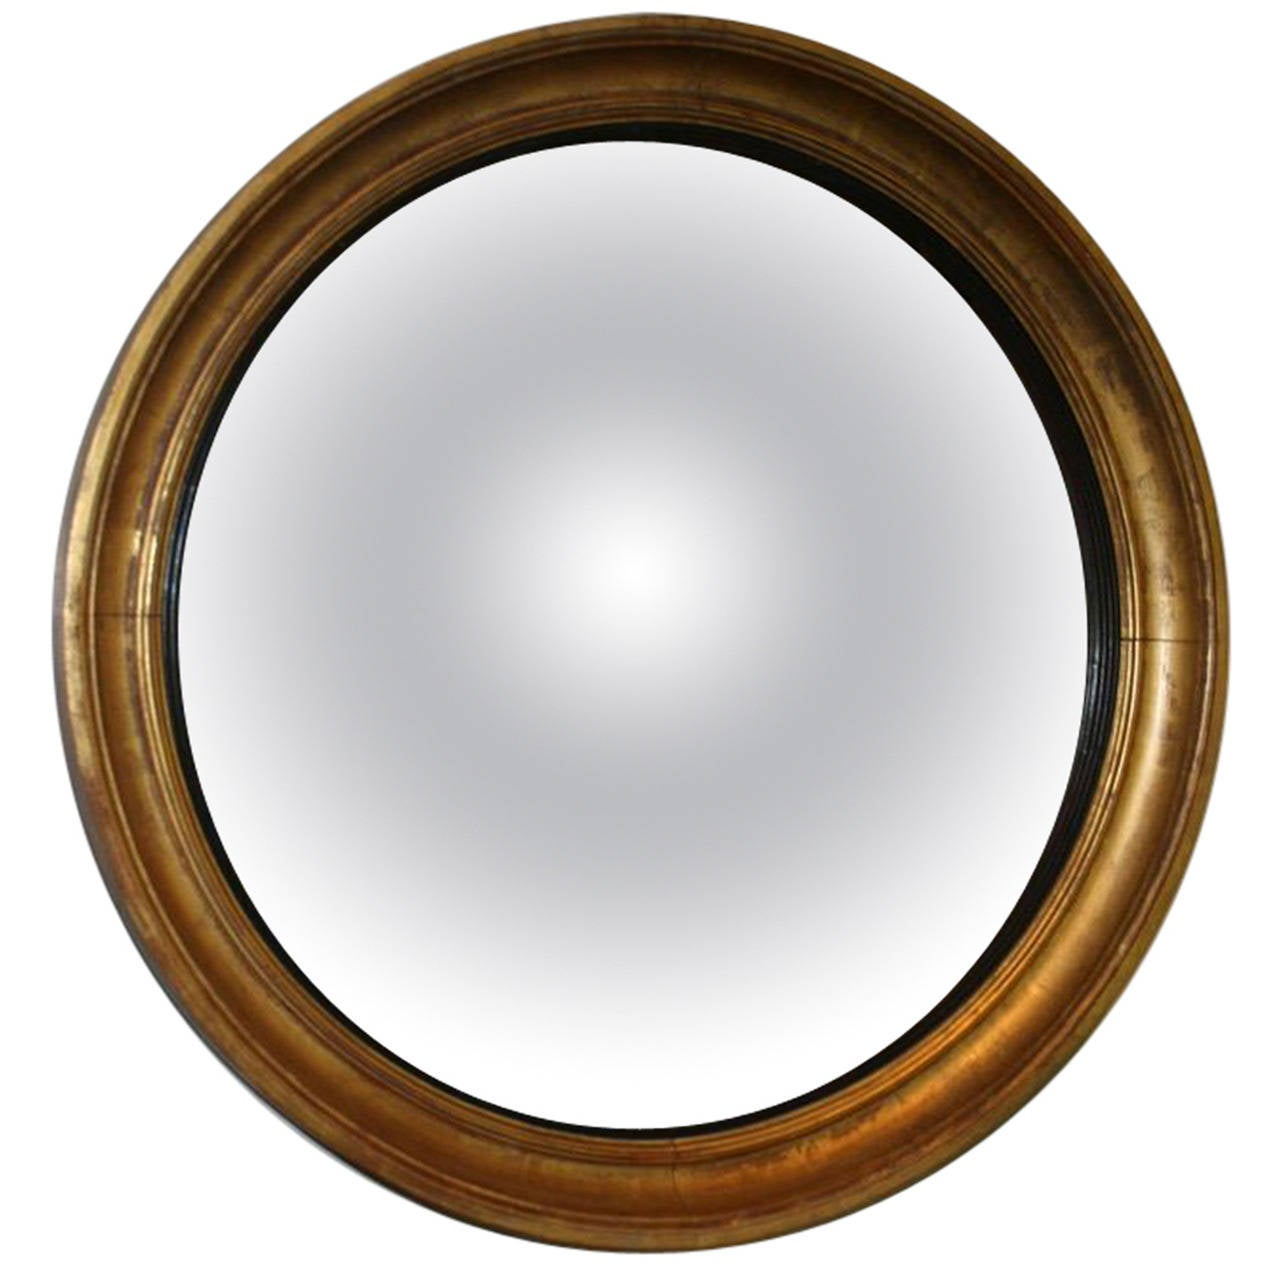 19th century regency giltwood convex mirror at 1stdibs for Convex mirror for home